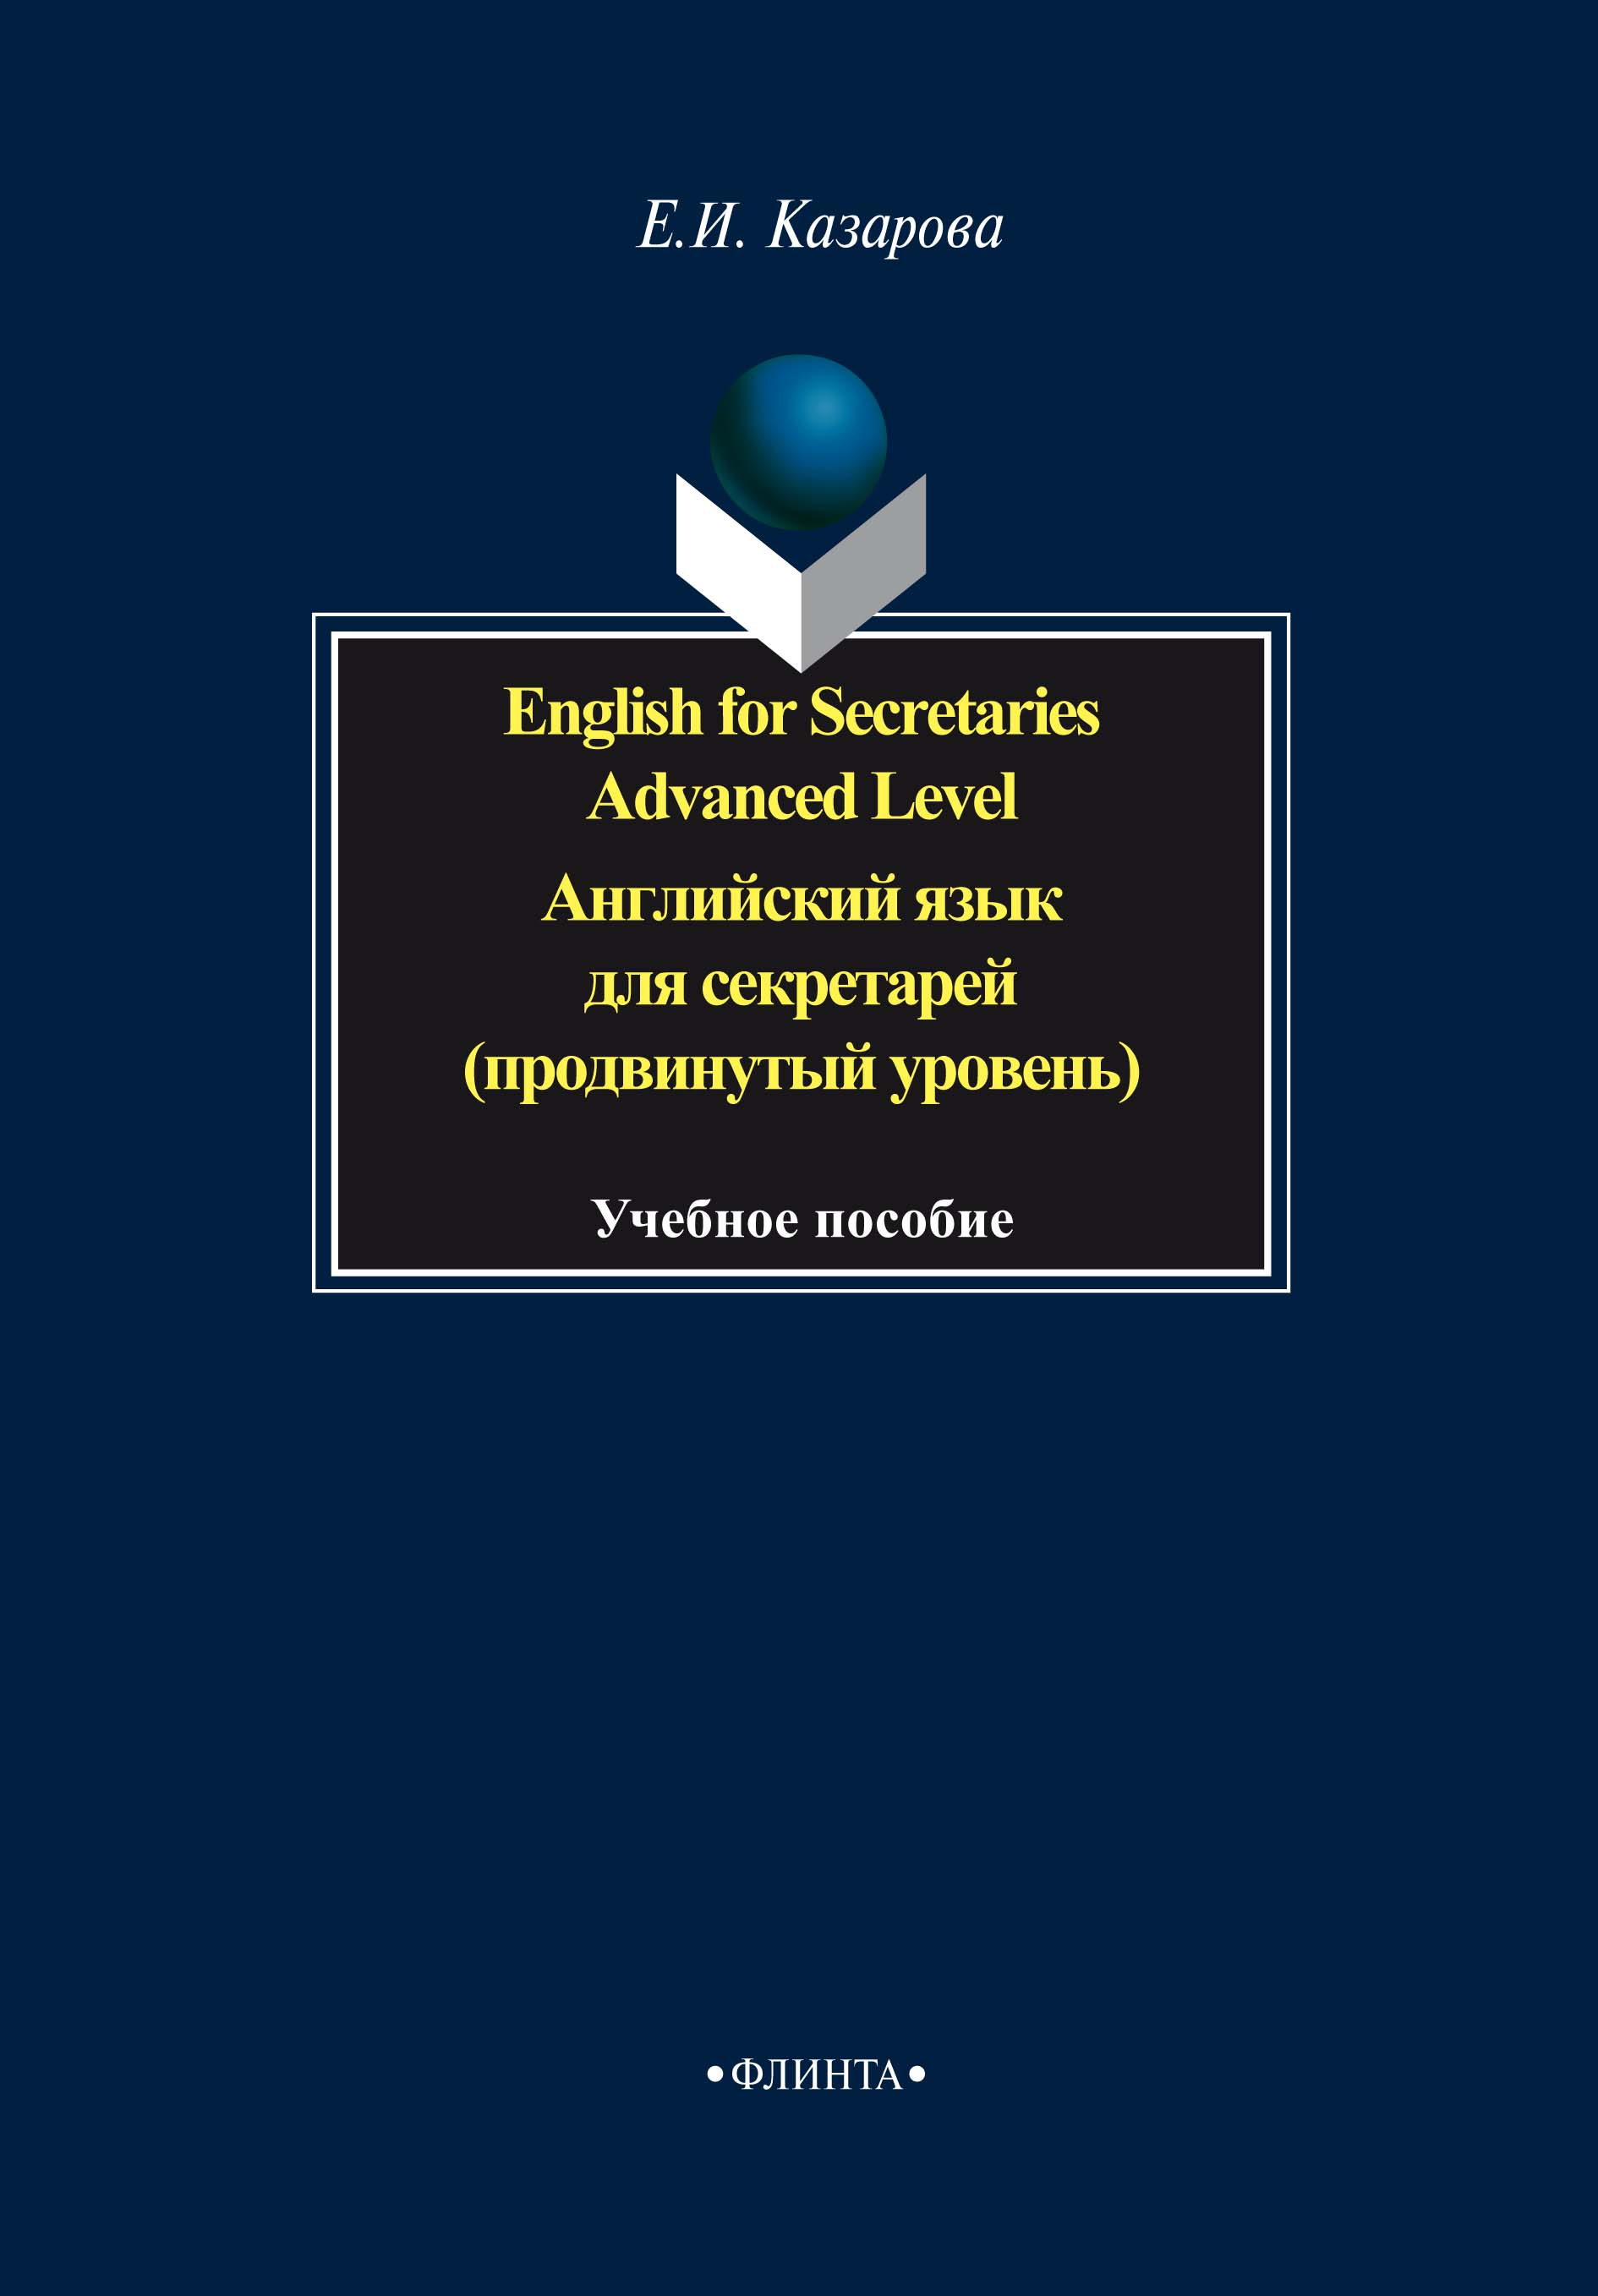 Е. И. Казарова English for Secretaries. Advanced Level. Английский язык для секретарей (продвинутый уровень) spacecraft atlantis model building block 630pcs advanced level intelligence development toy for kids